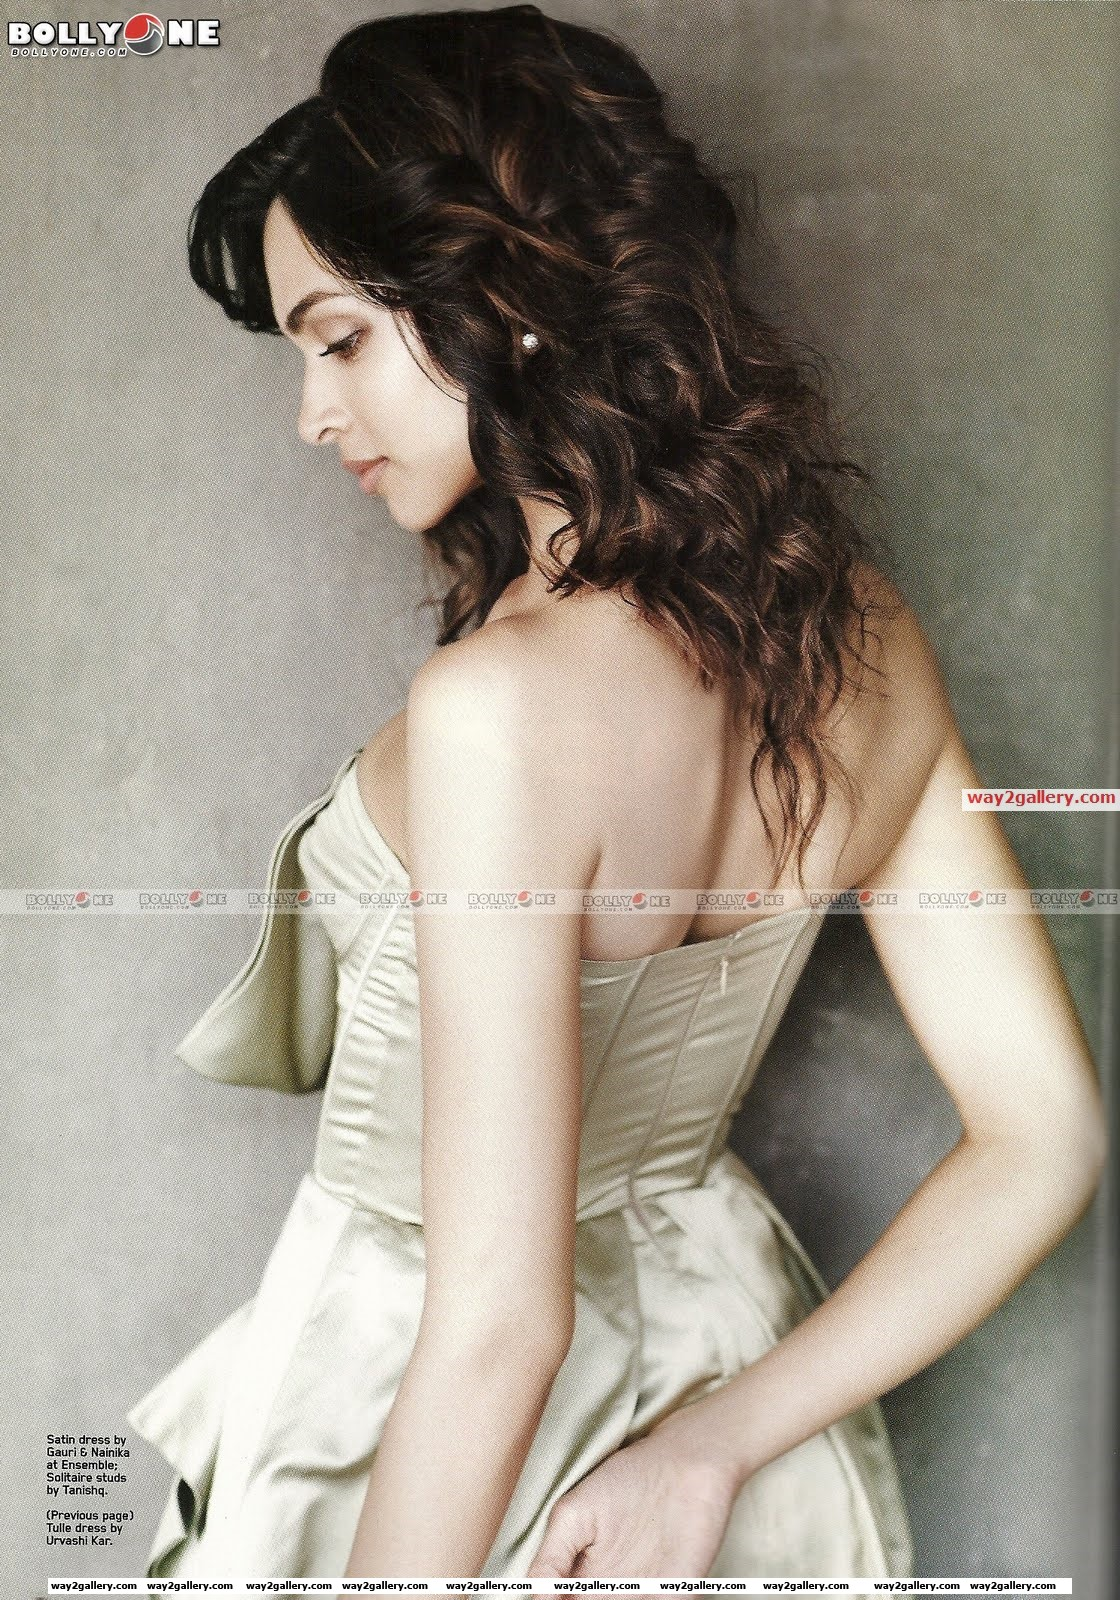 Deepika padukone maxim february 2010 hq scans